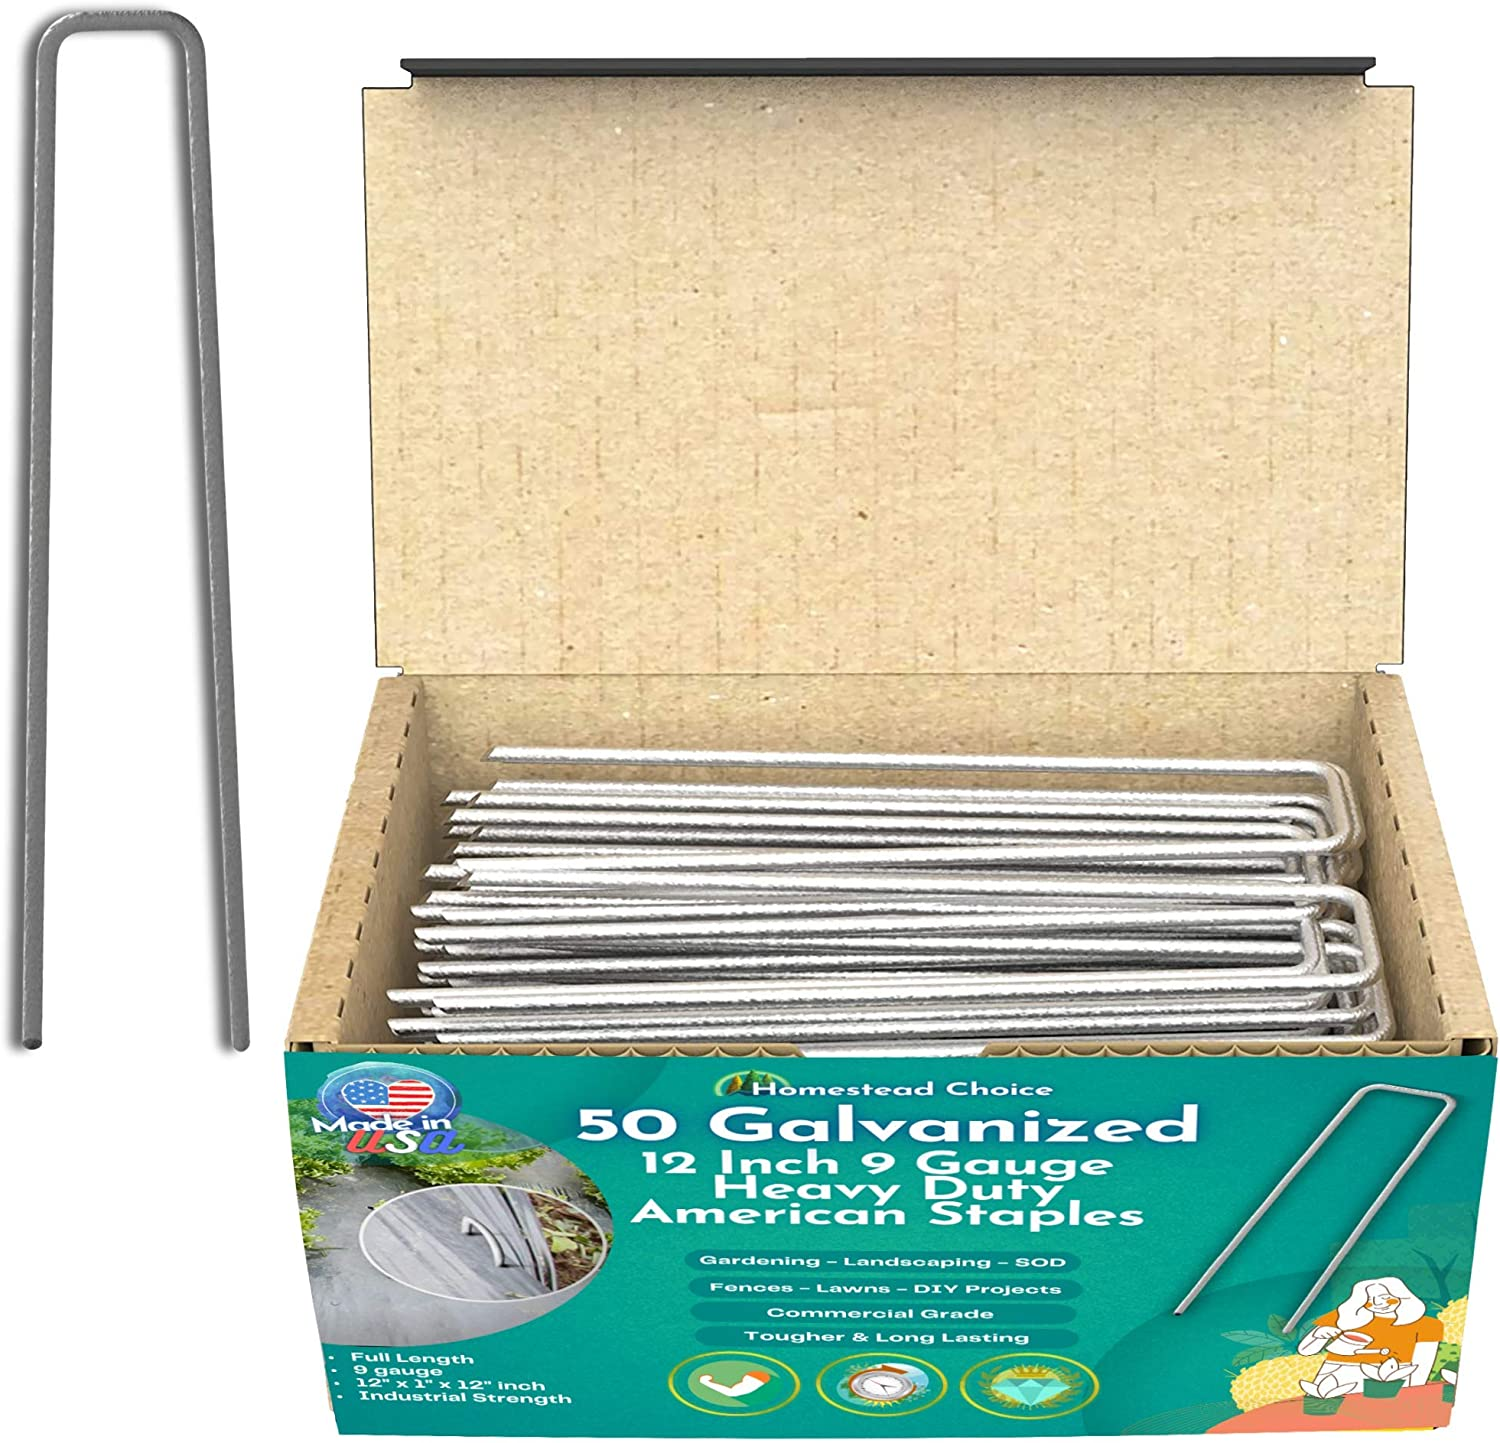 Homestead Choice 50 Count 12 Inch 9-Gauge Galvanized Staples - Made in USA - Garden Landscape Sod Staples - Anti-Rust Pins - Stakes for Weed Barrier Fabric, Ground Cover & Landscaping